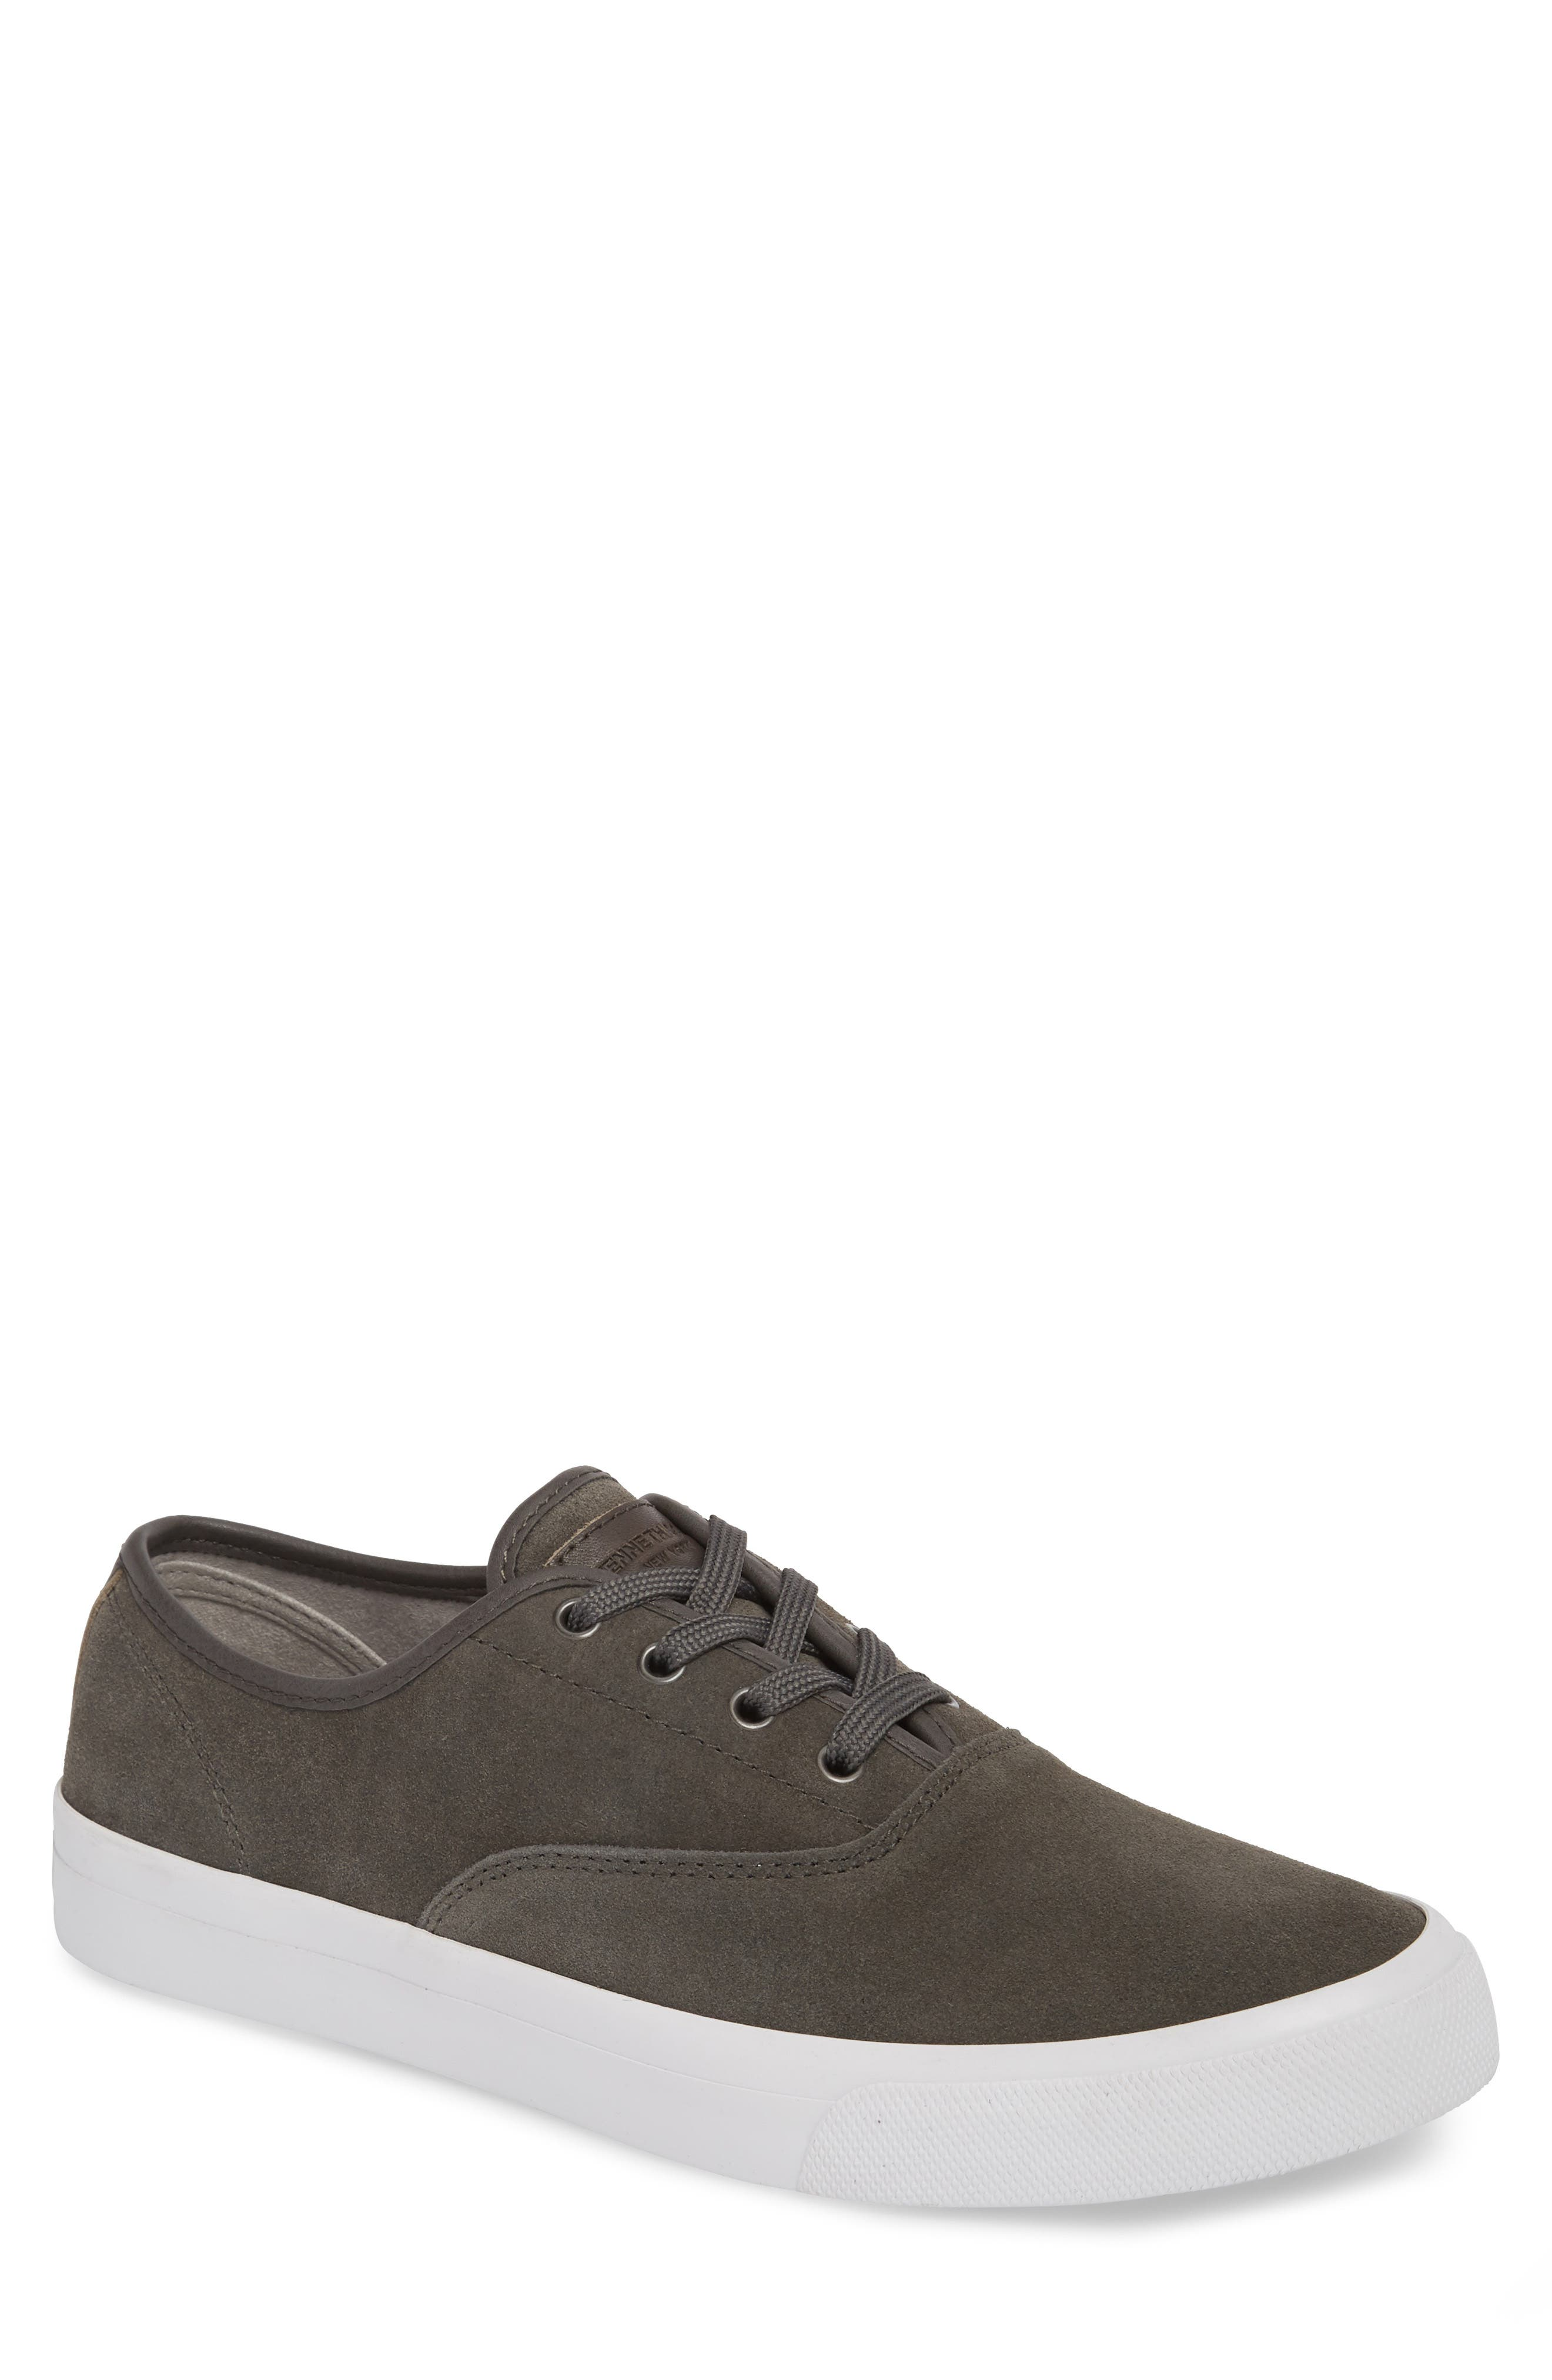 KENNETH COLE NEW YORK Toor Low Top Sneaker, Main, color, GREY COMBO SUEDE